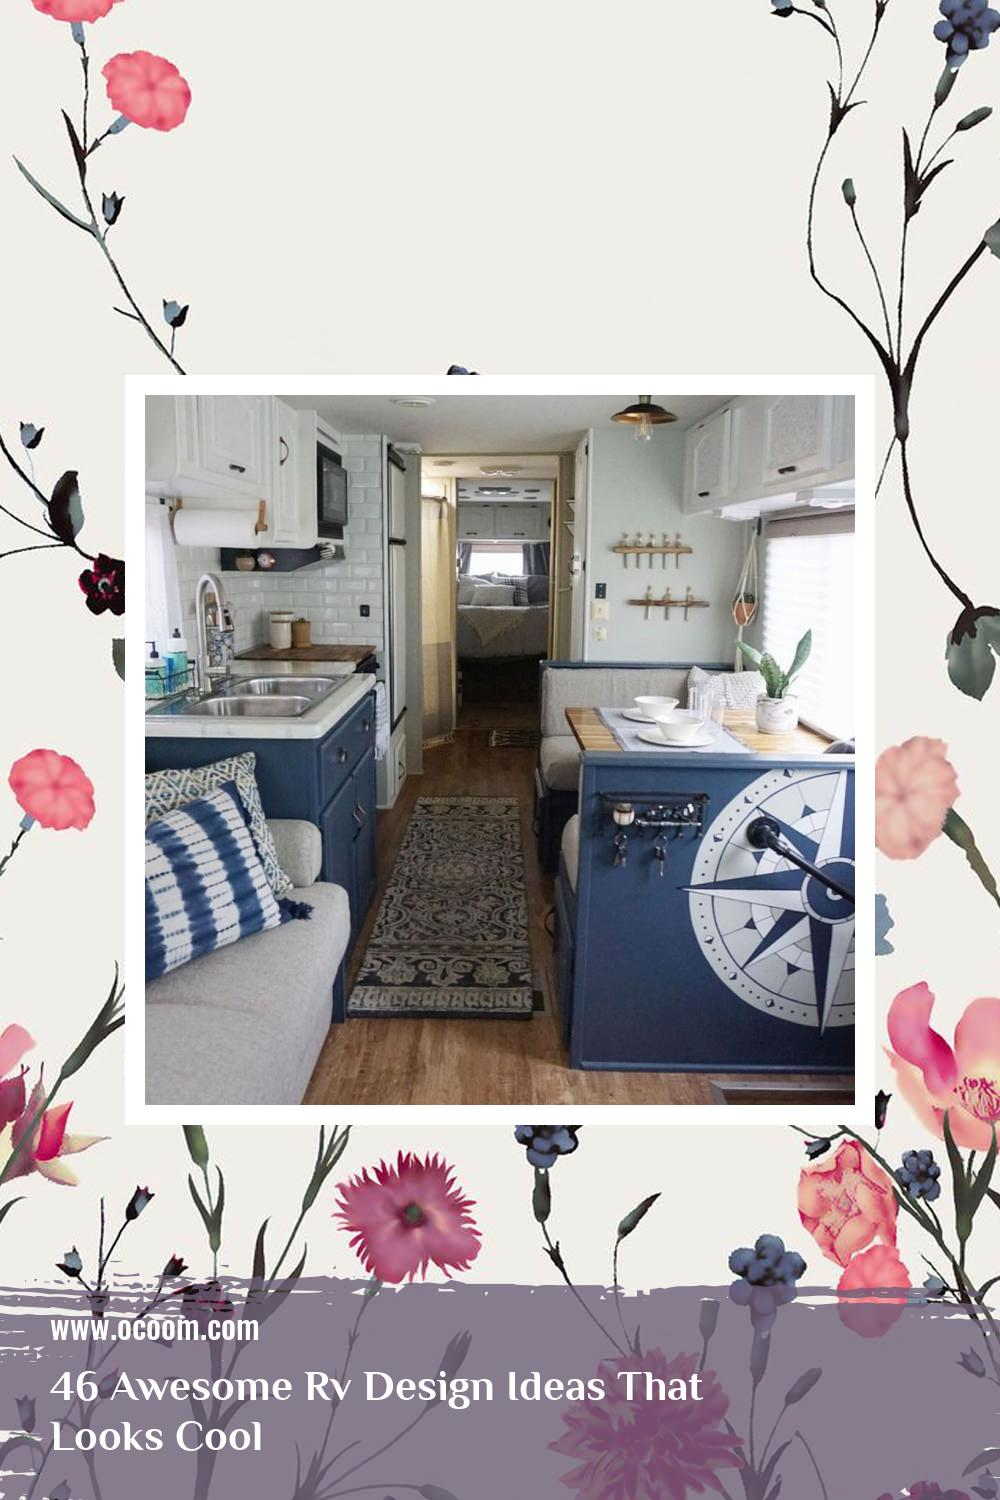 46 Awesome Rv Design Ideas That Looks Cool 10